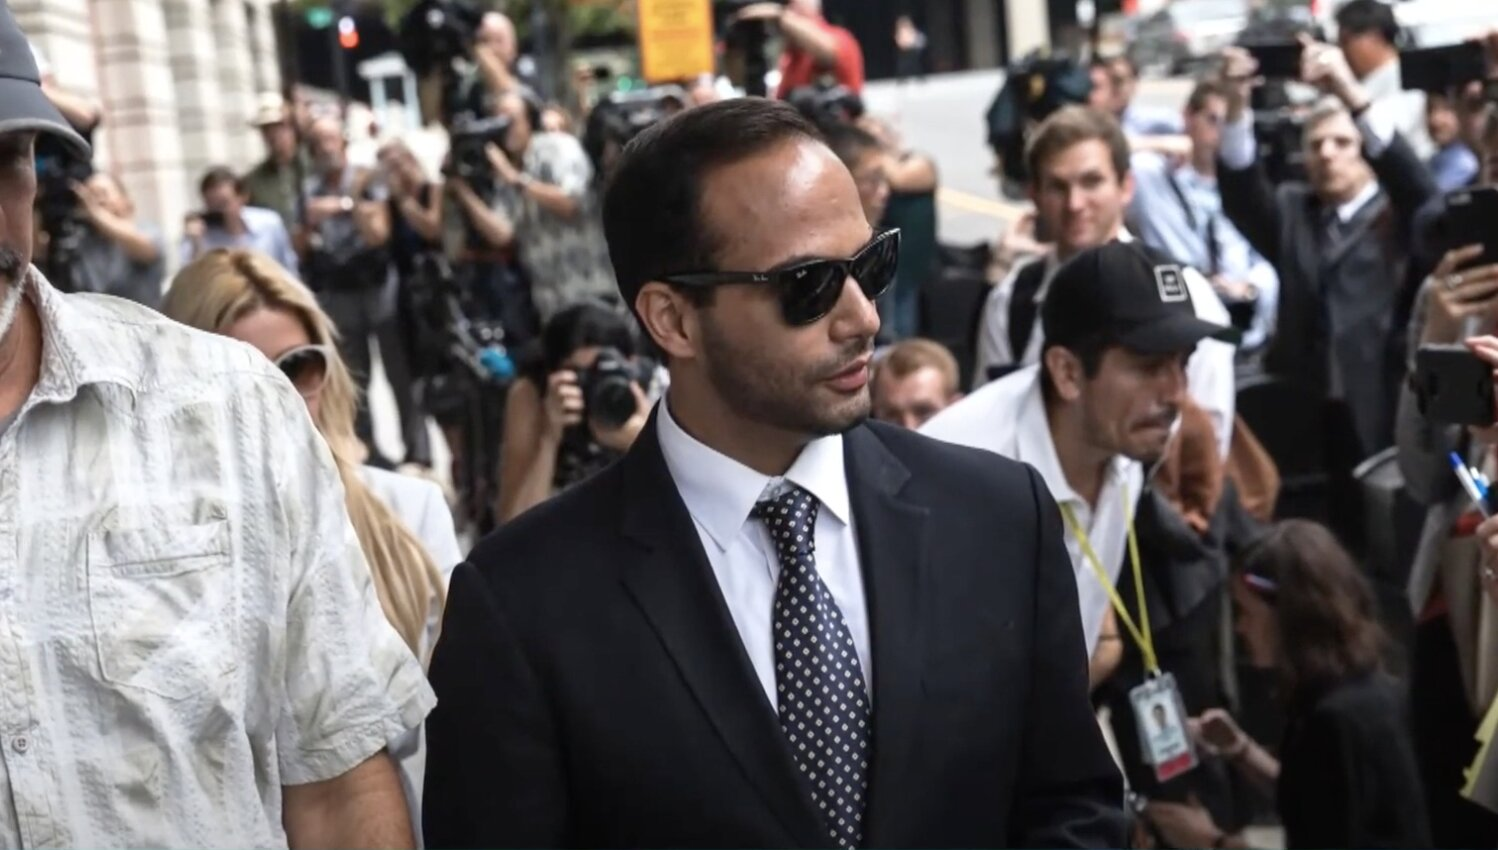 George Papadopoulos to receive pardon from President Trump!